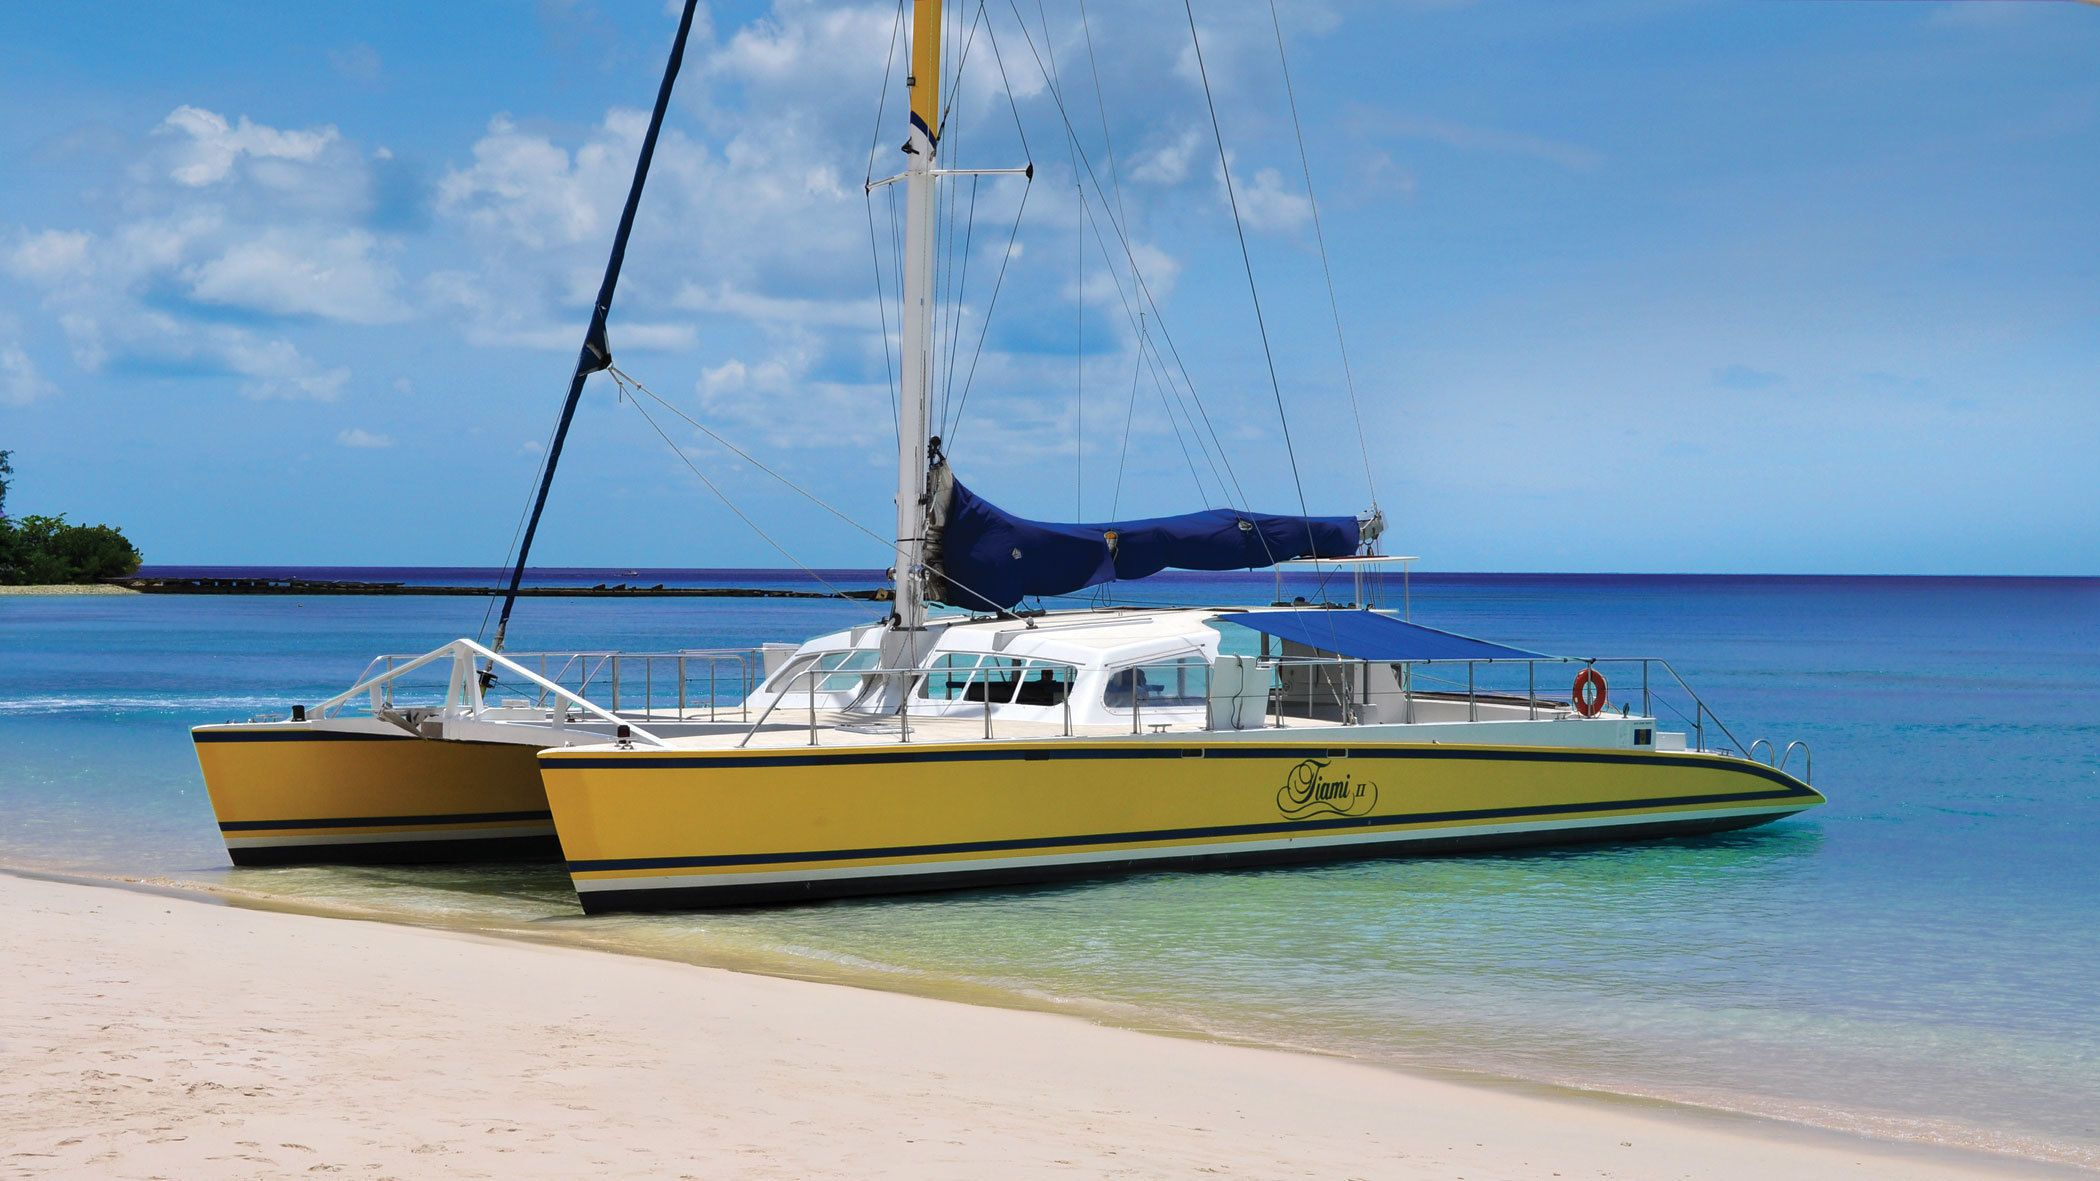 cruise boat at beach in Barbados